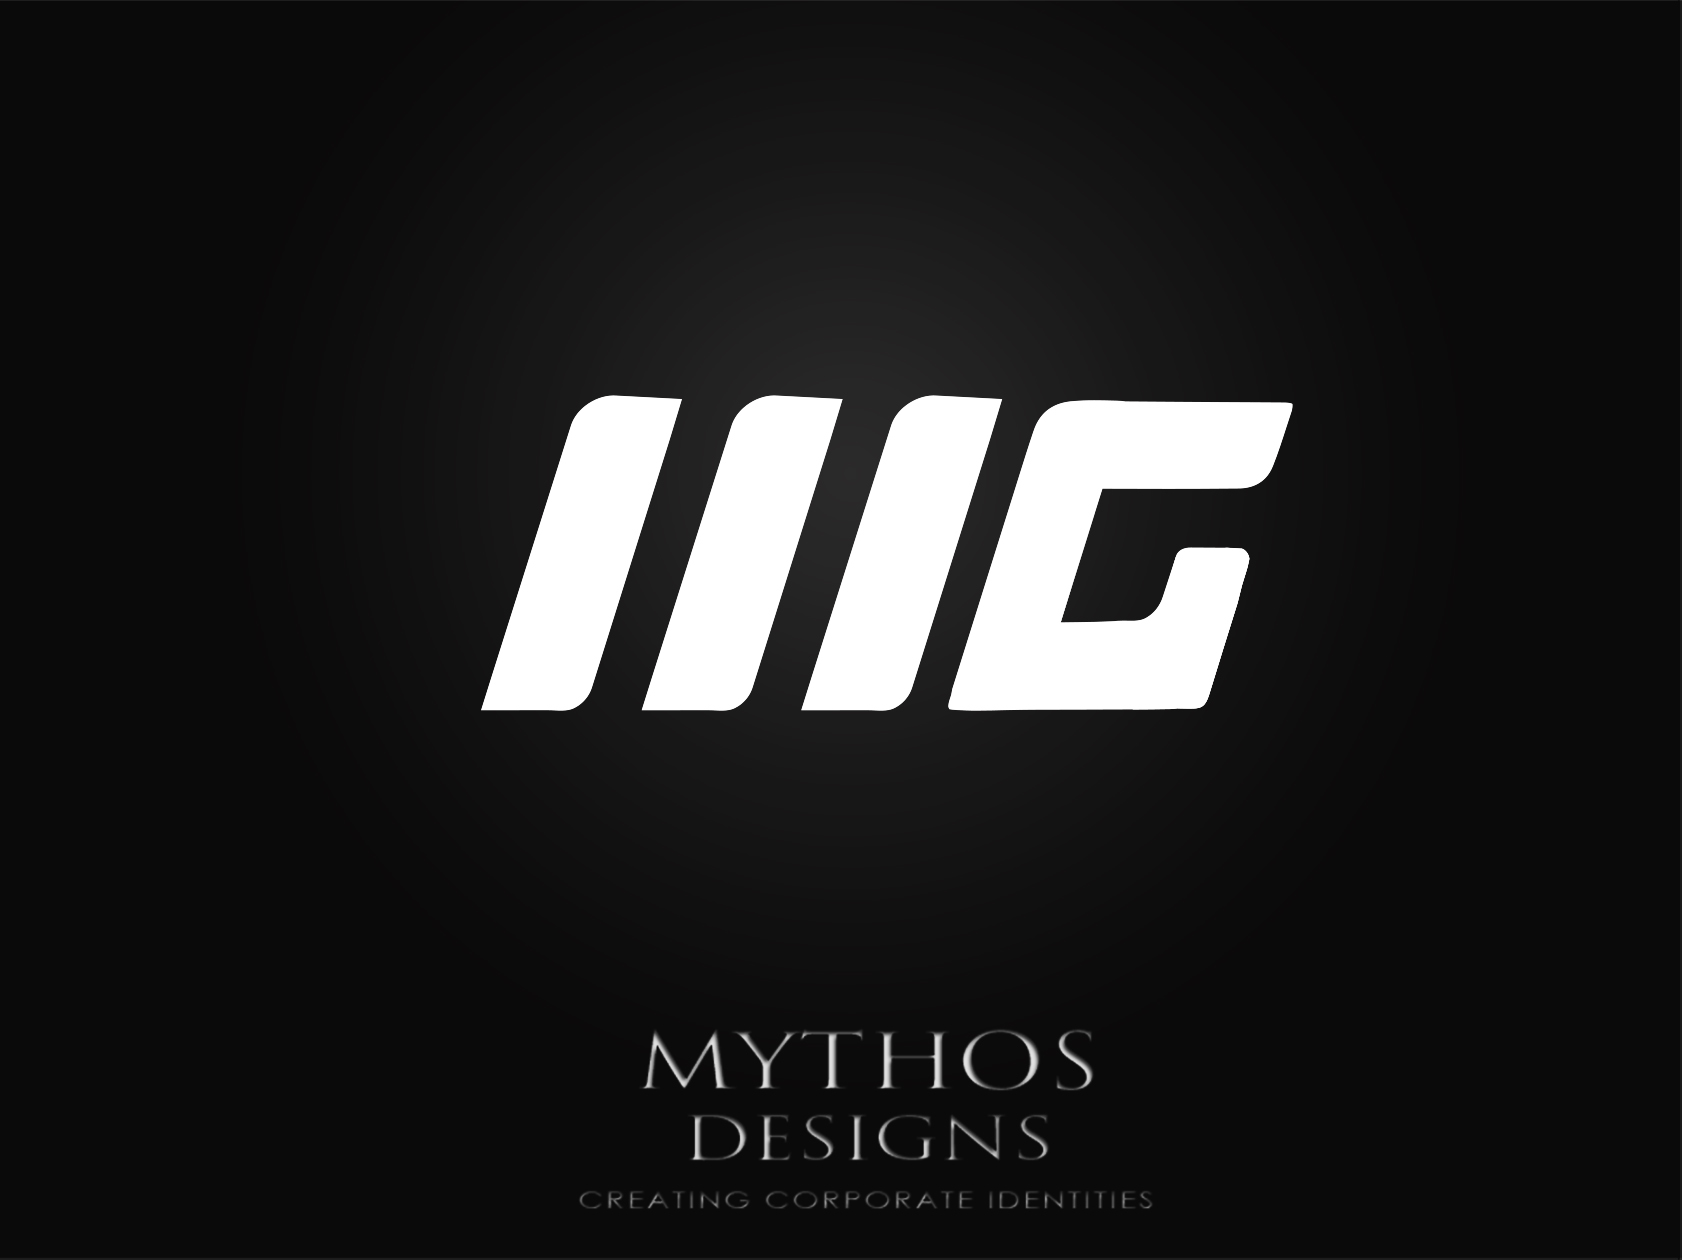 Custom Design by Mythos Designs - Entry No. 24 in the Custom Design Contest Imaginative Custom Design for MG.